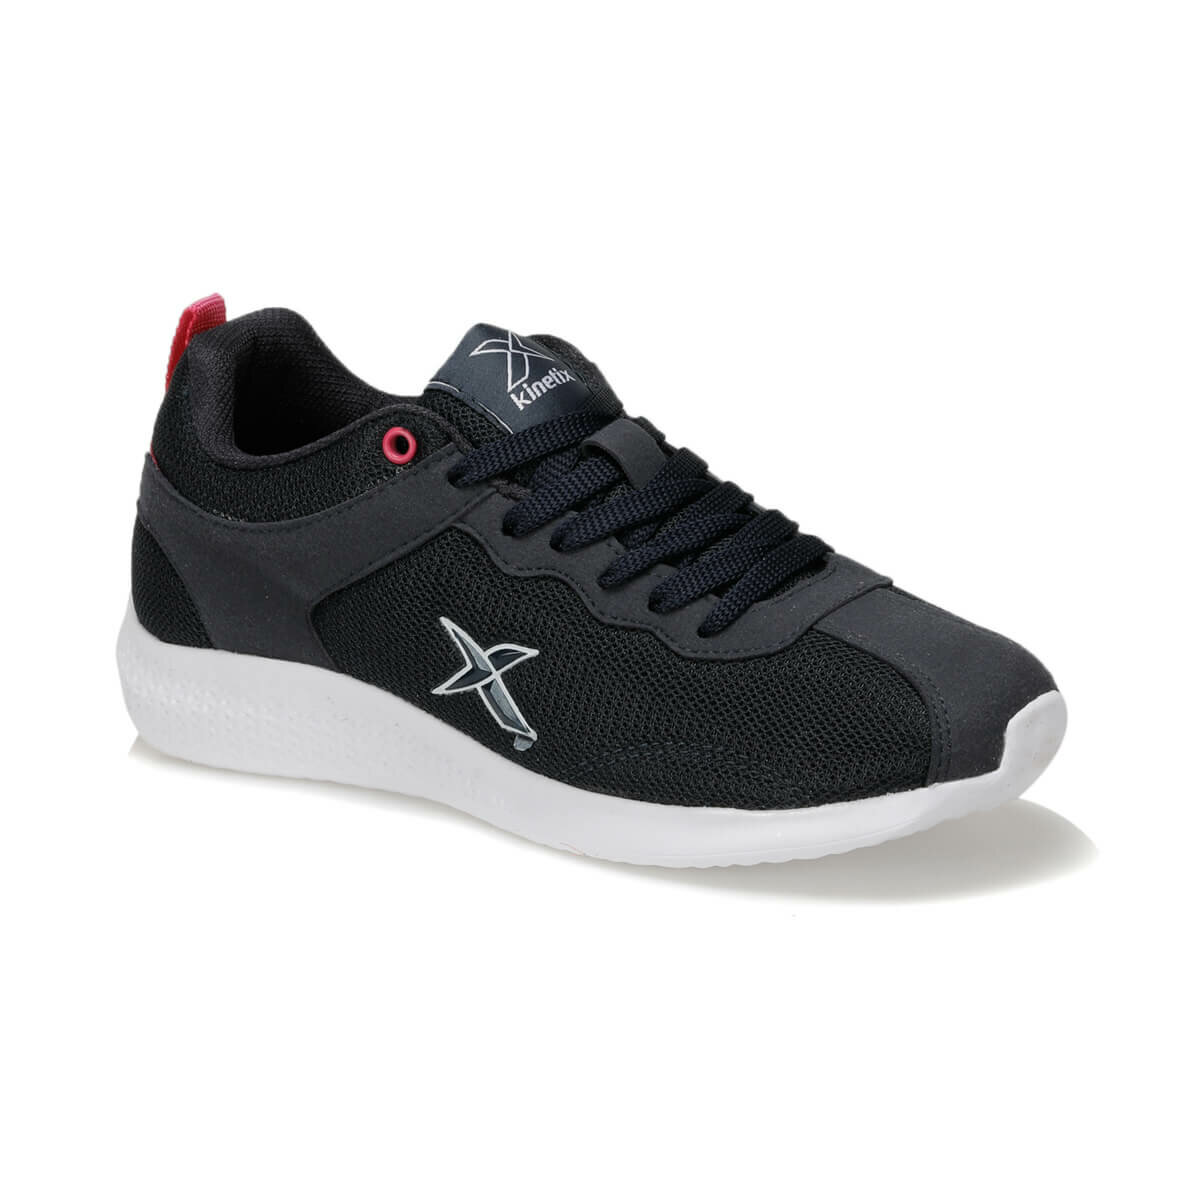 FLO PETRA W Black Women 'S Sneaker Shoes KINETIX